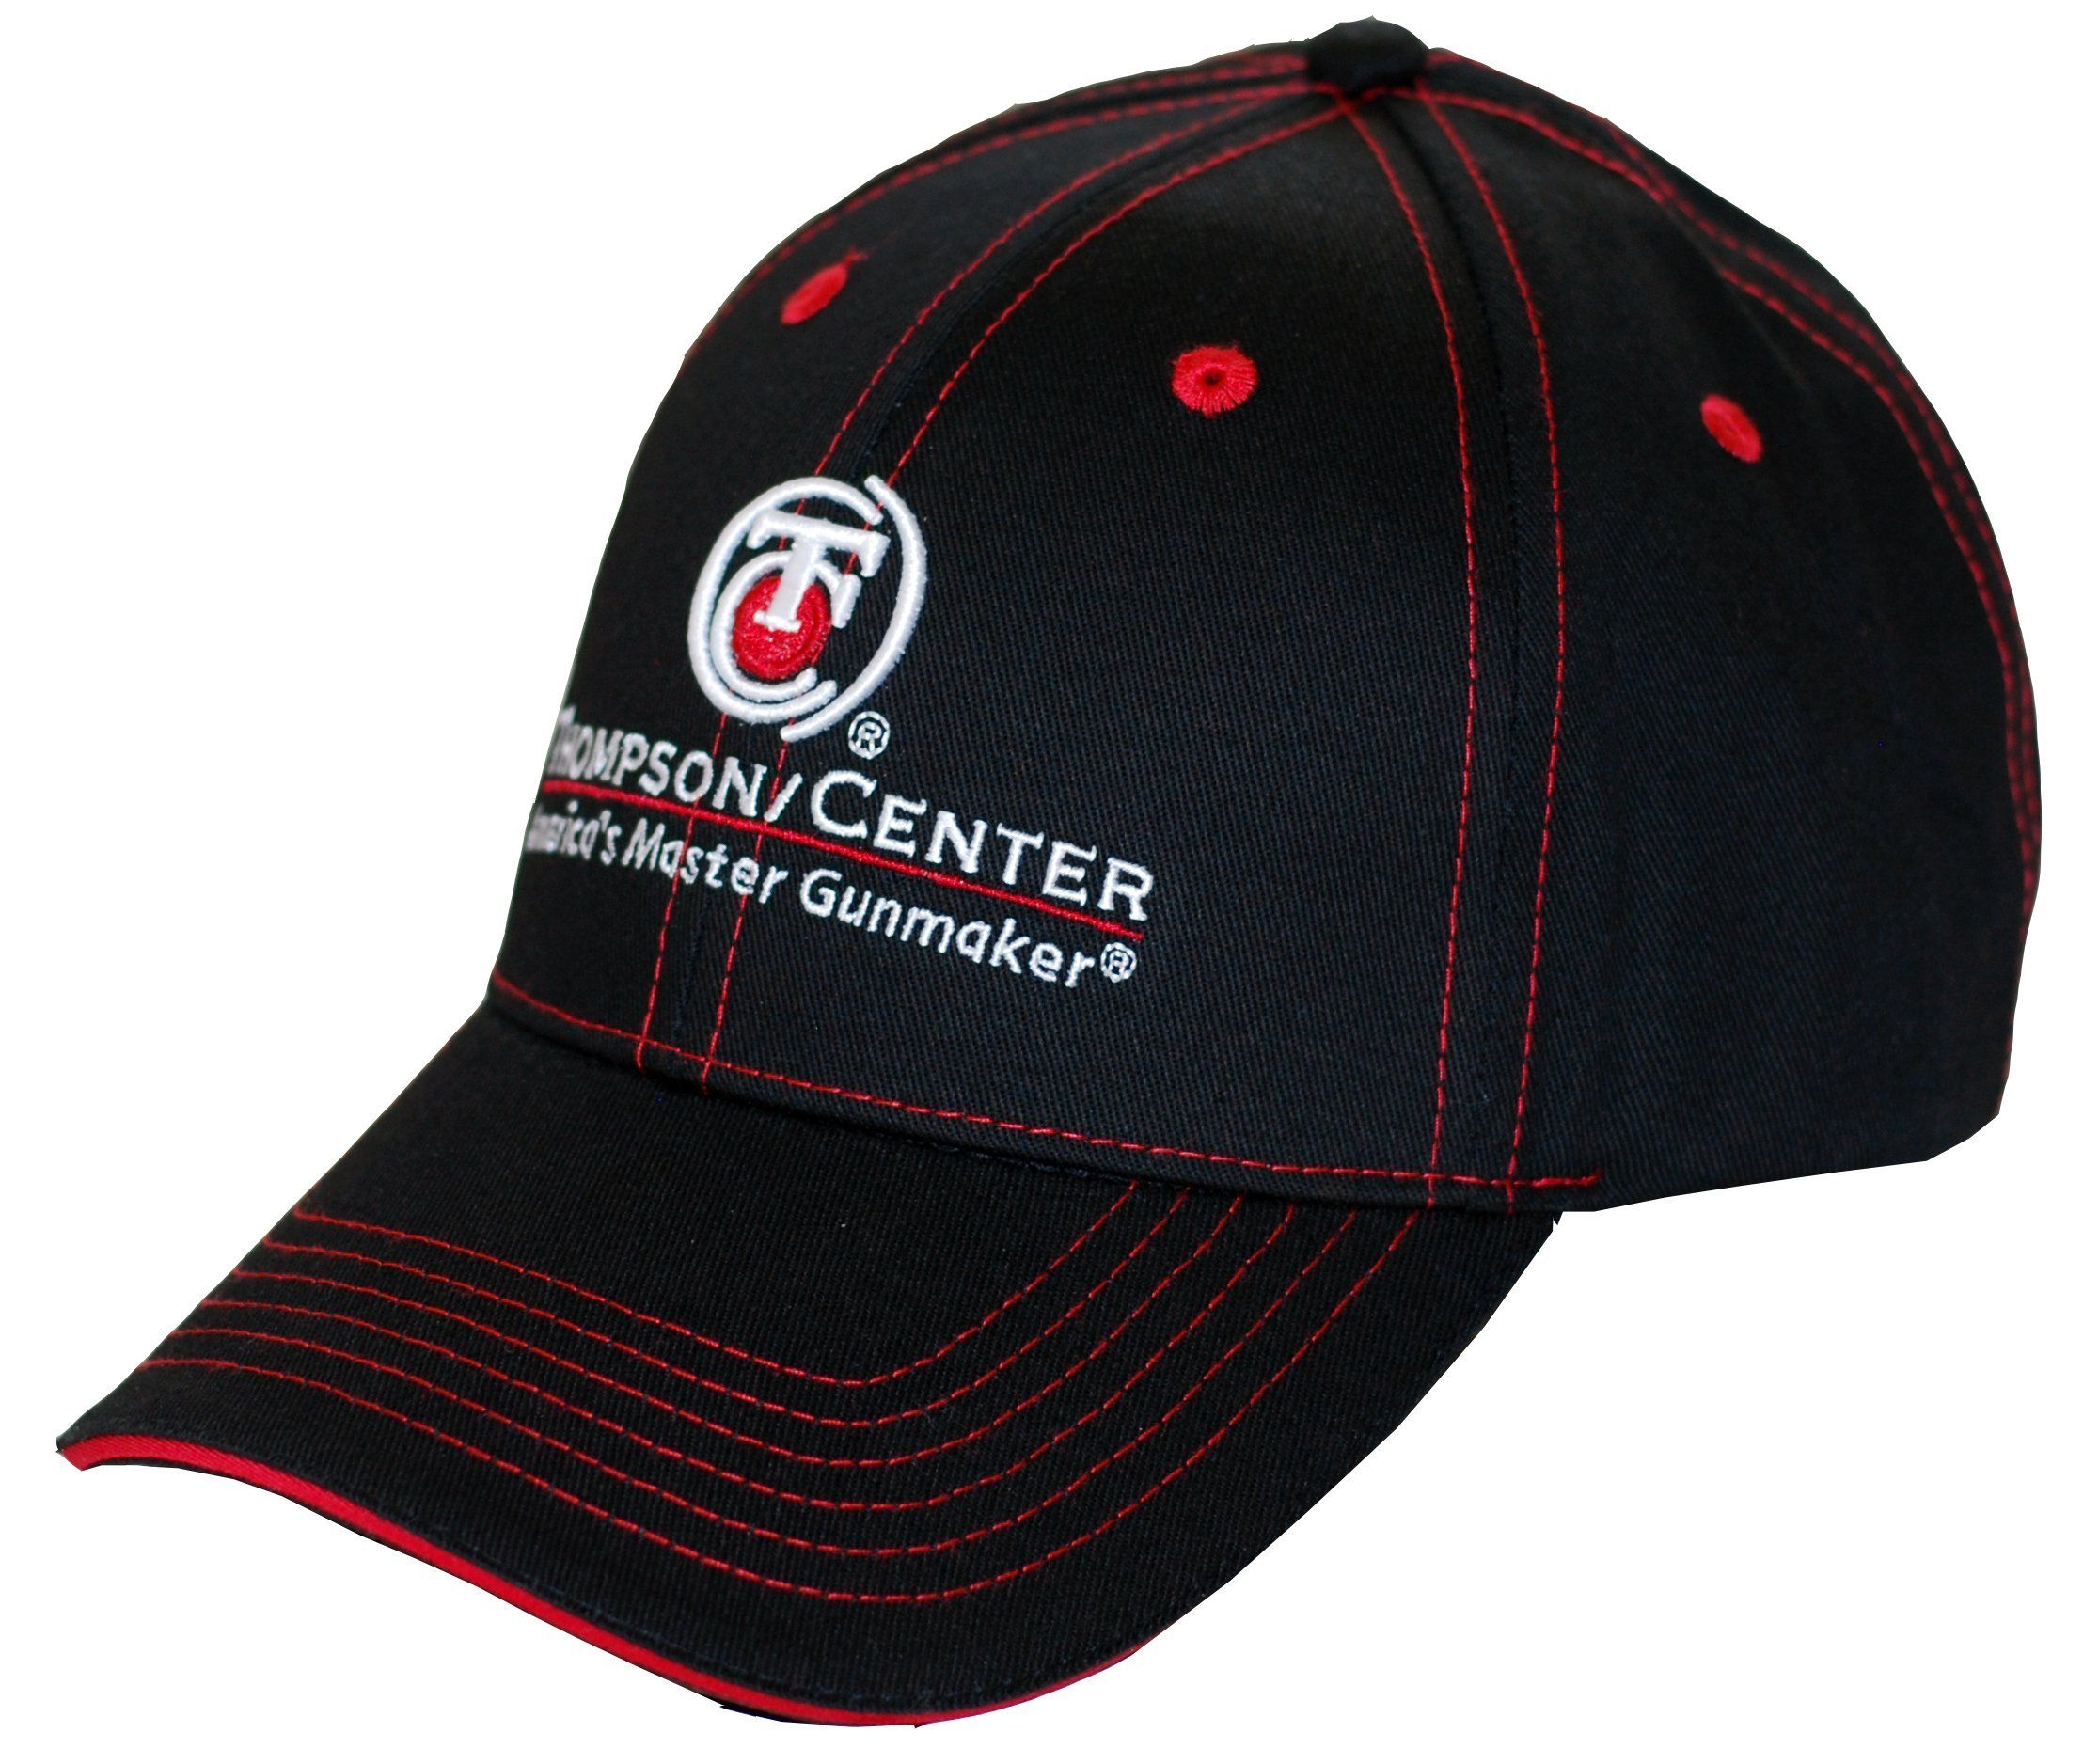 ee7473a3298 Thompson Center Black Logo Cap. Thompson Center Arms apparel lets everyone  know you